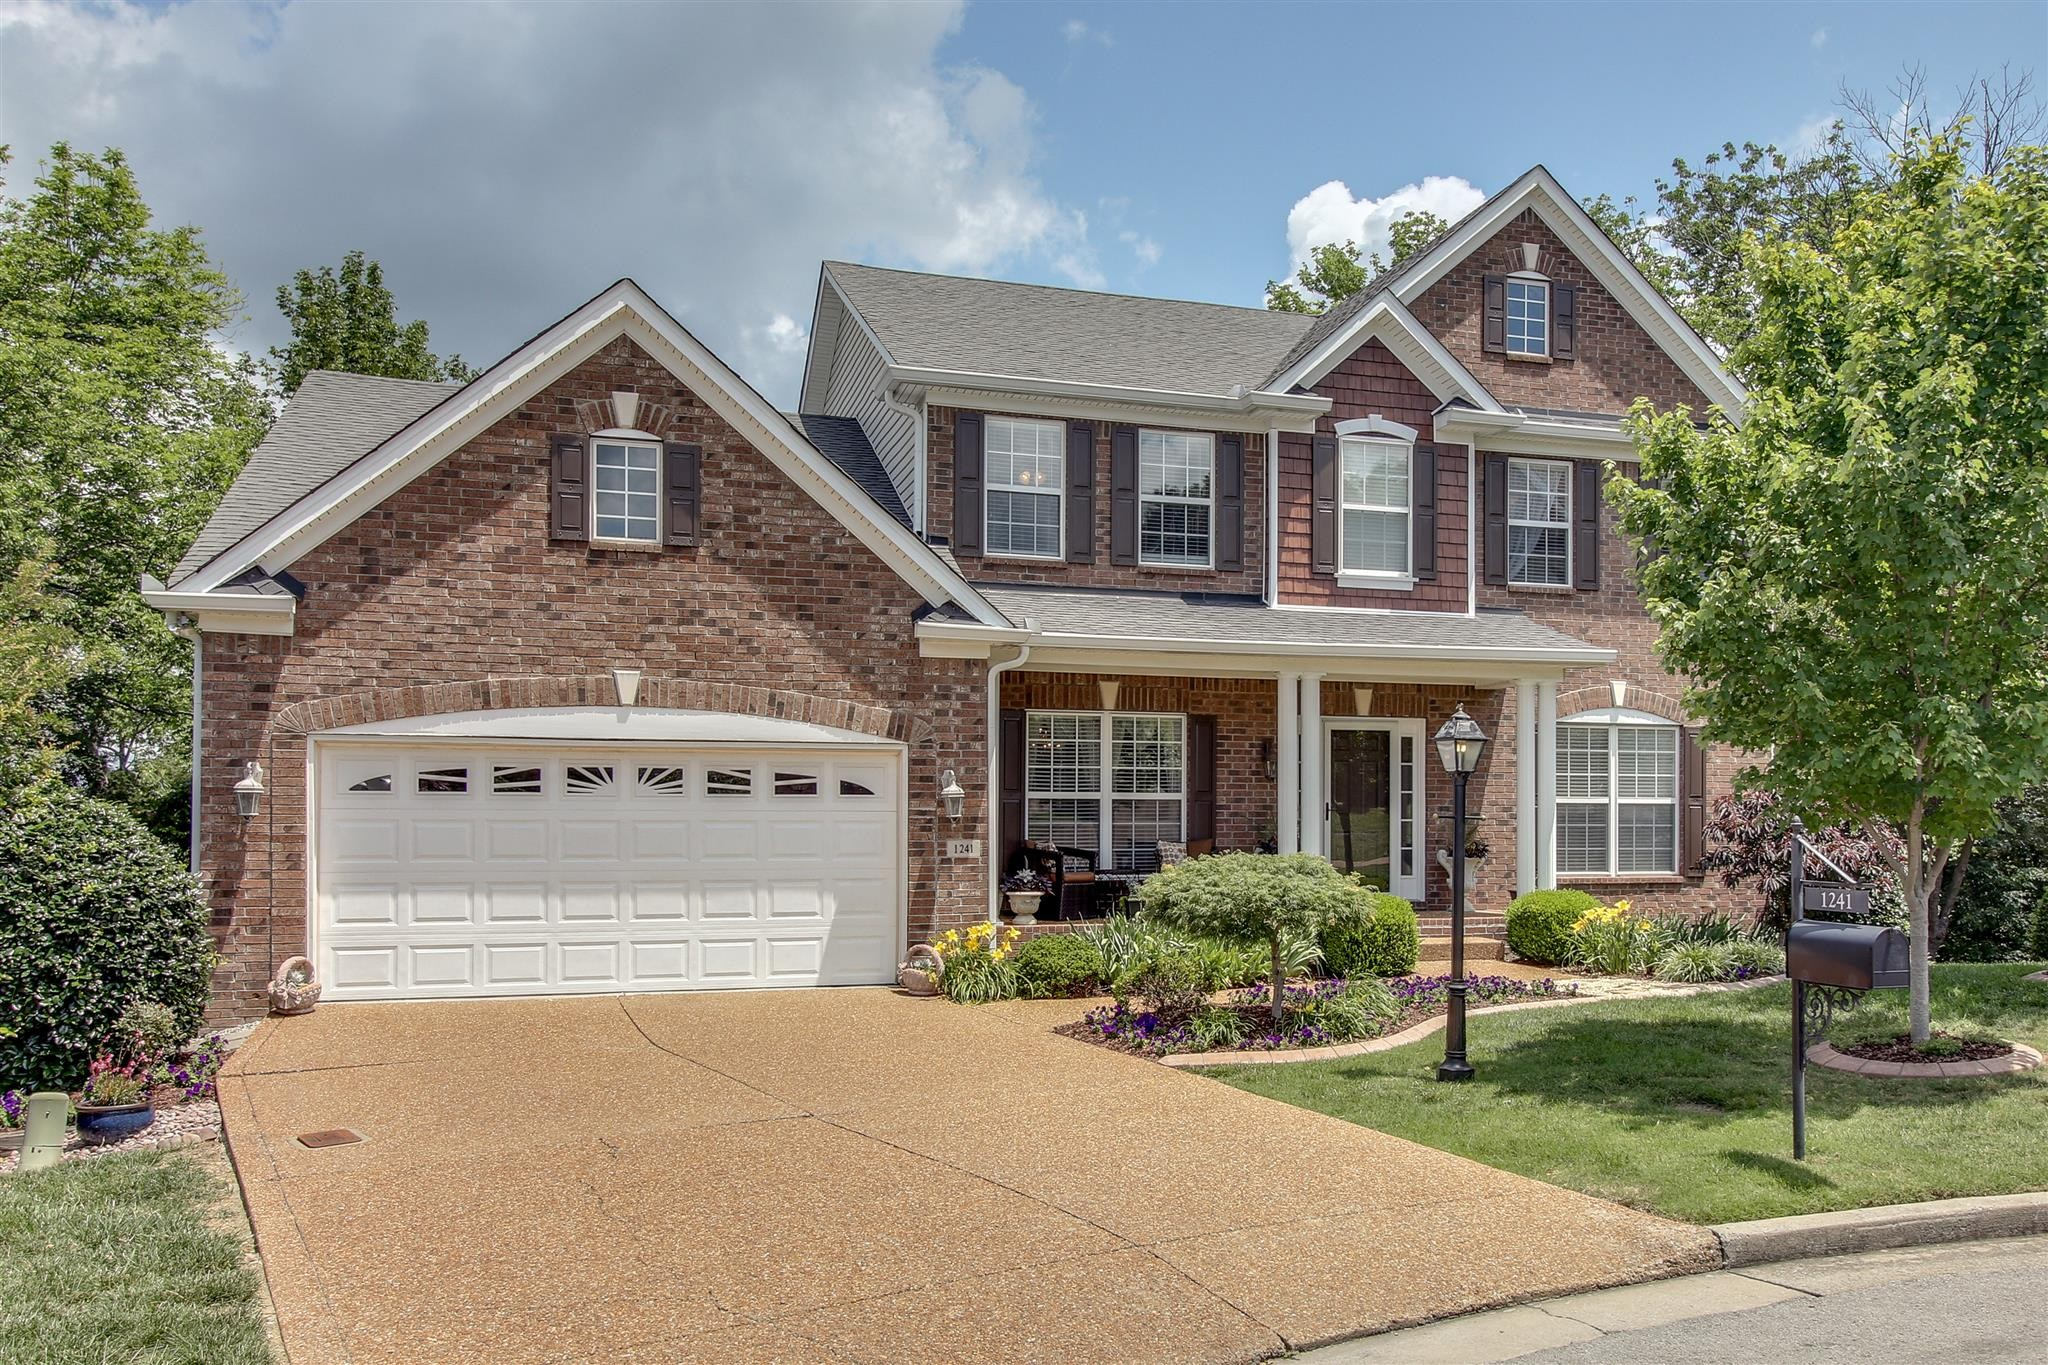 1241 Lighthouse Pl Property Photo - Brentwood, TN real estate listing